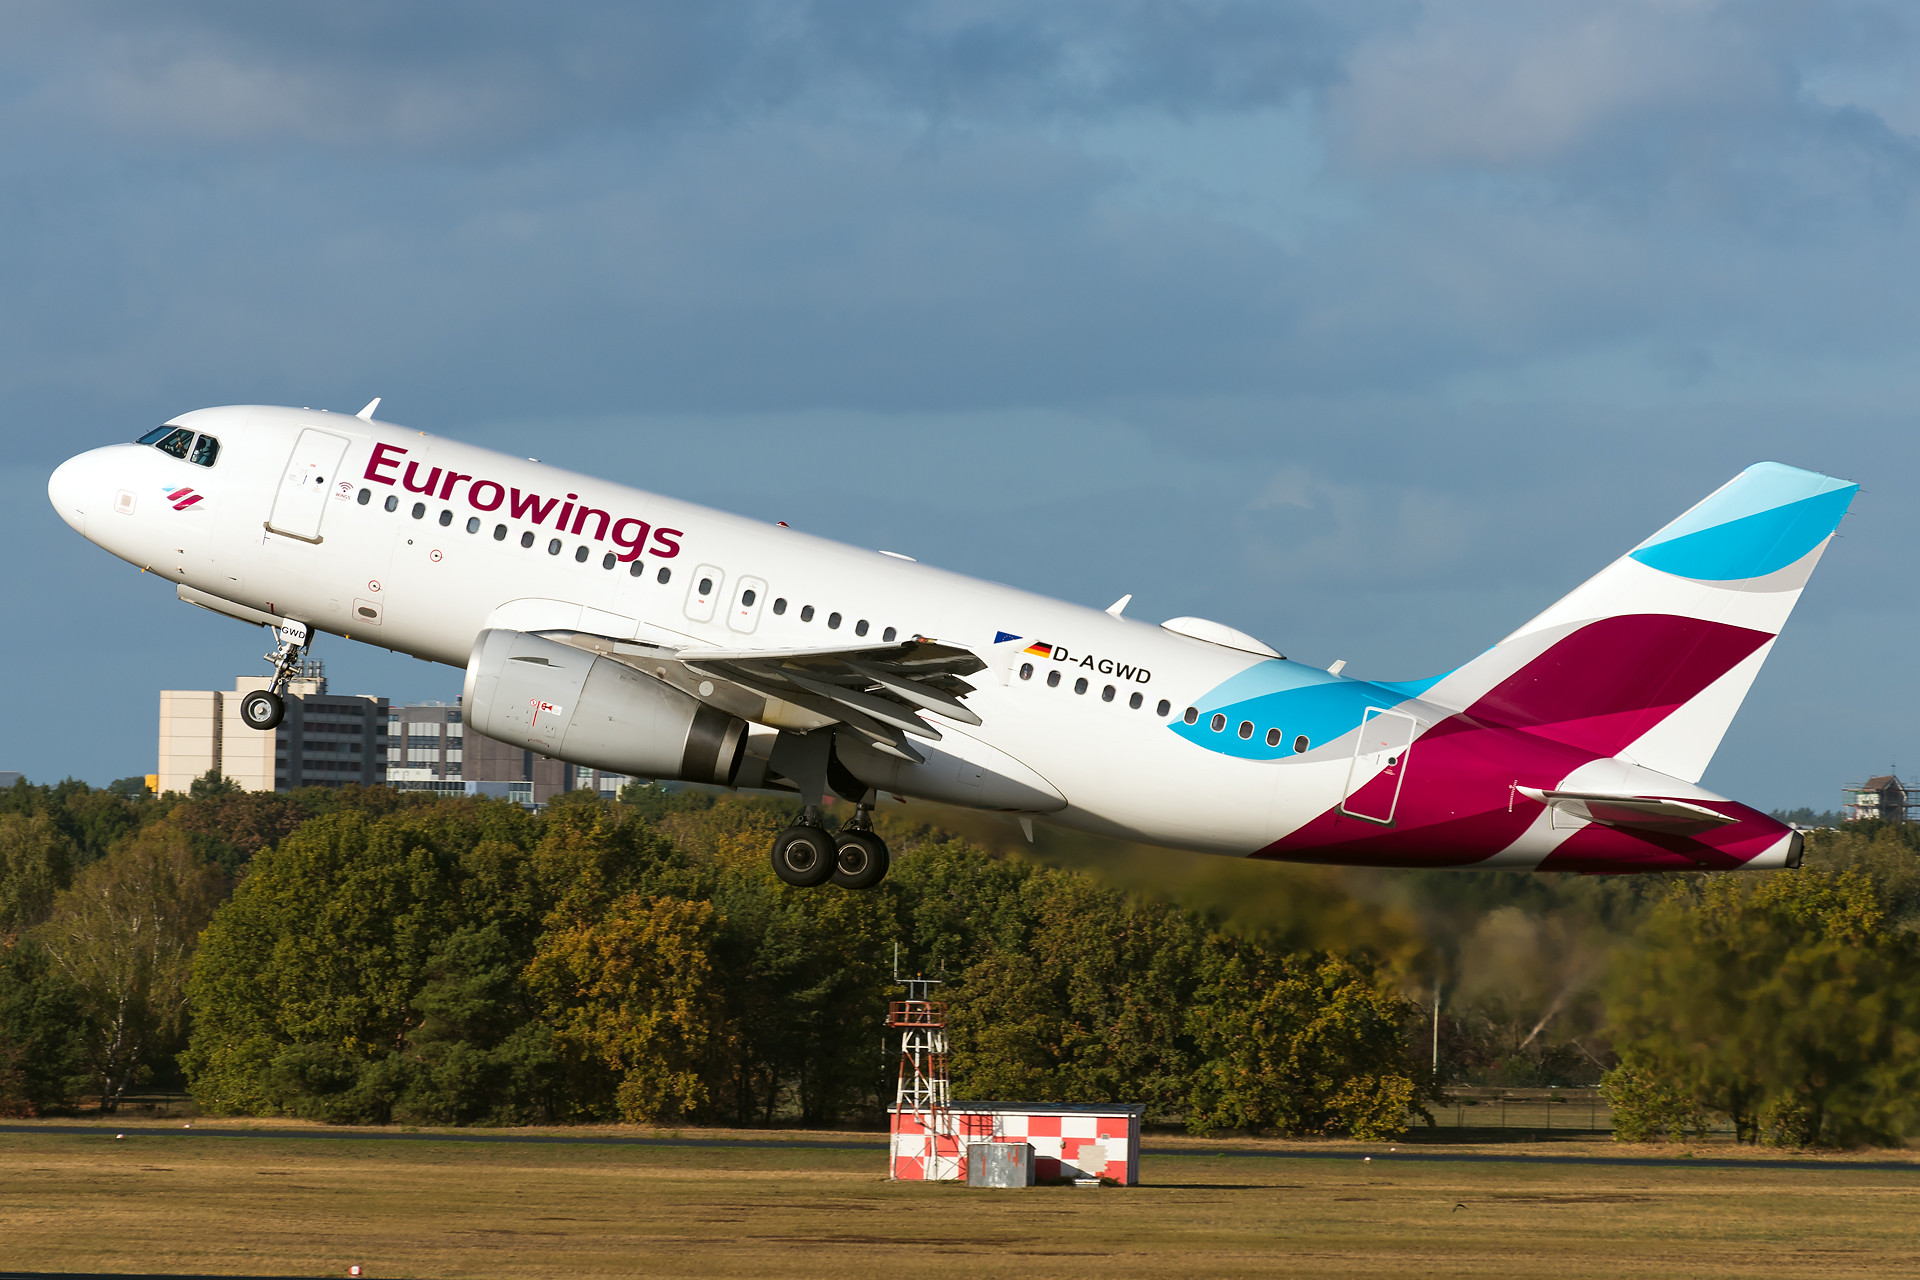 Eurowings - A319 departures in perfect light conditions.